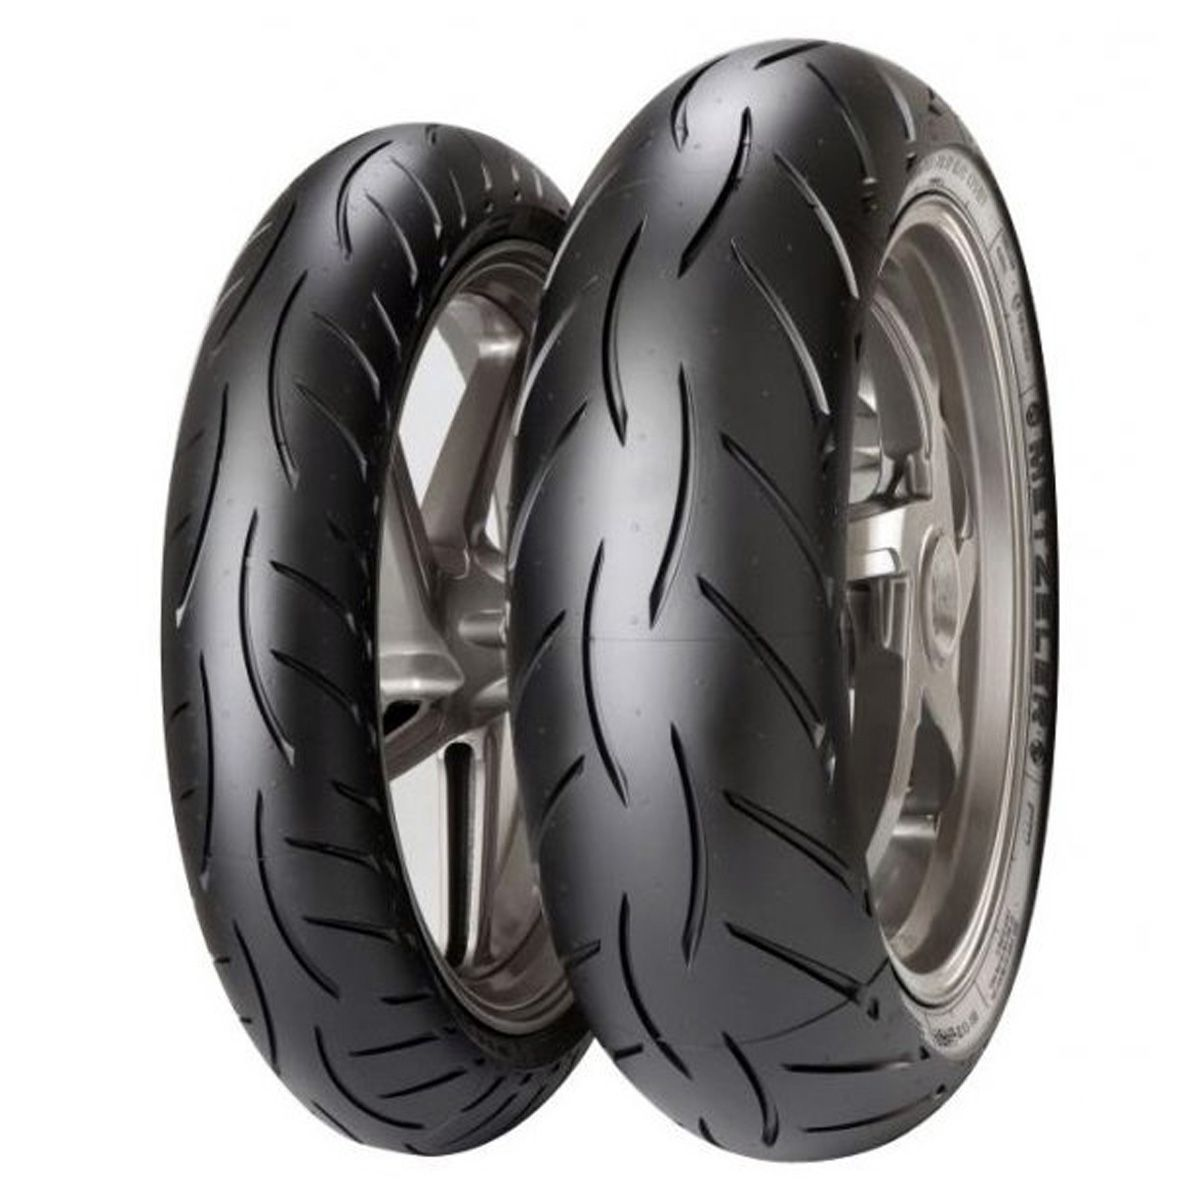 Metzeler Sportec M5 Interact Tire Review